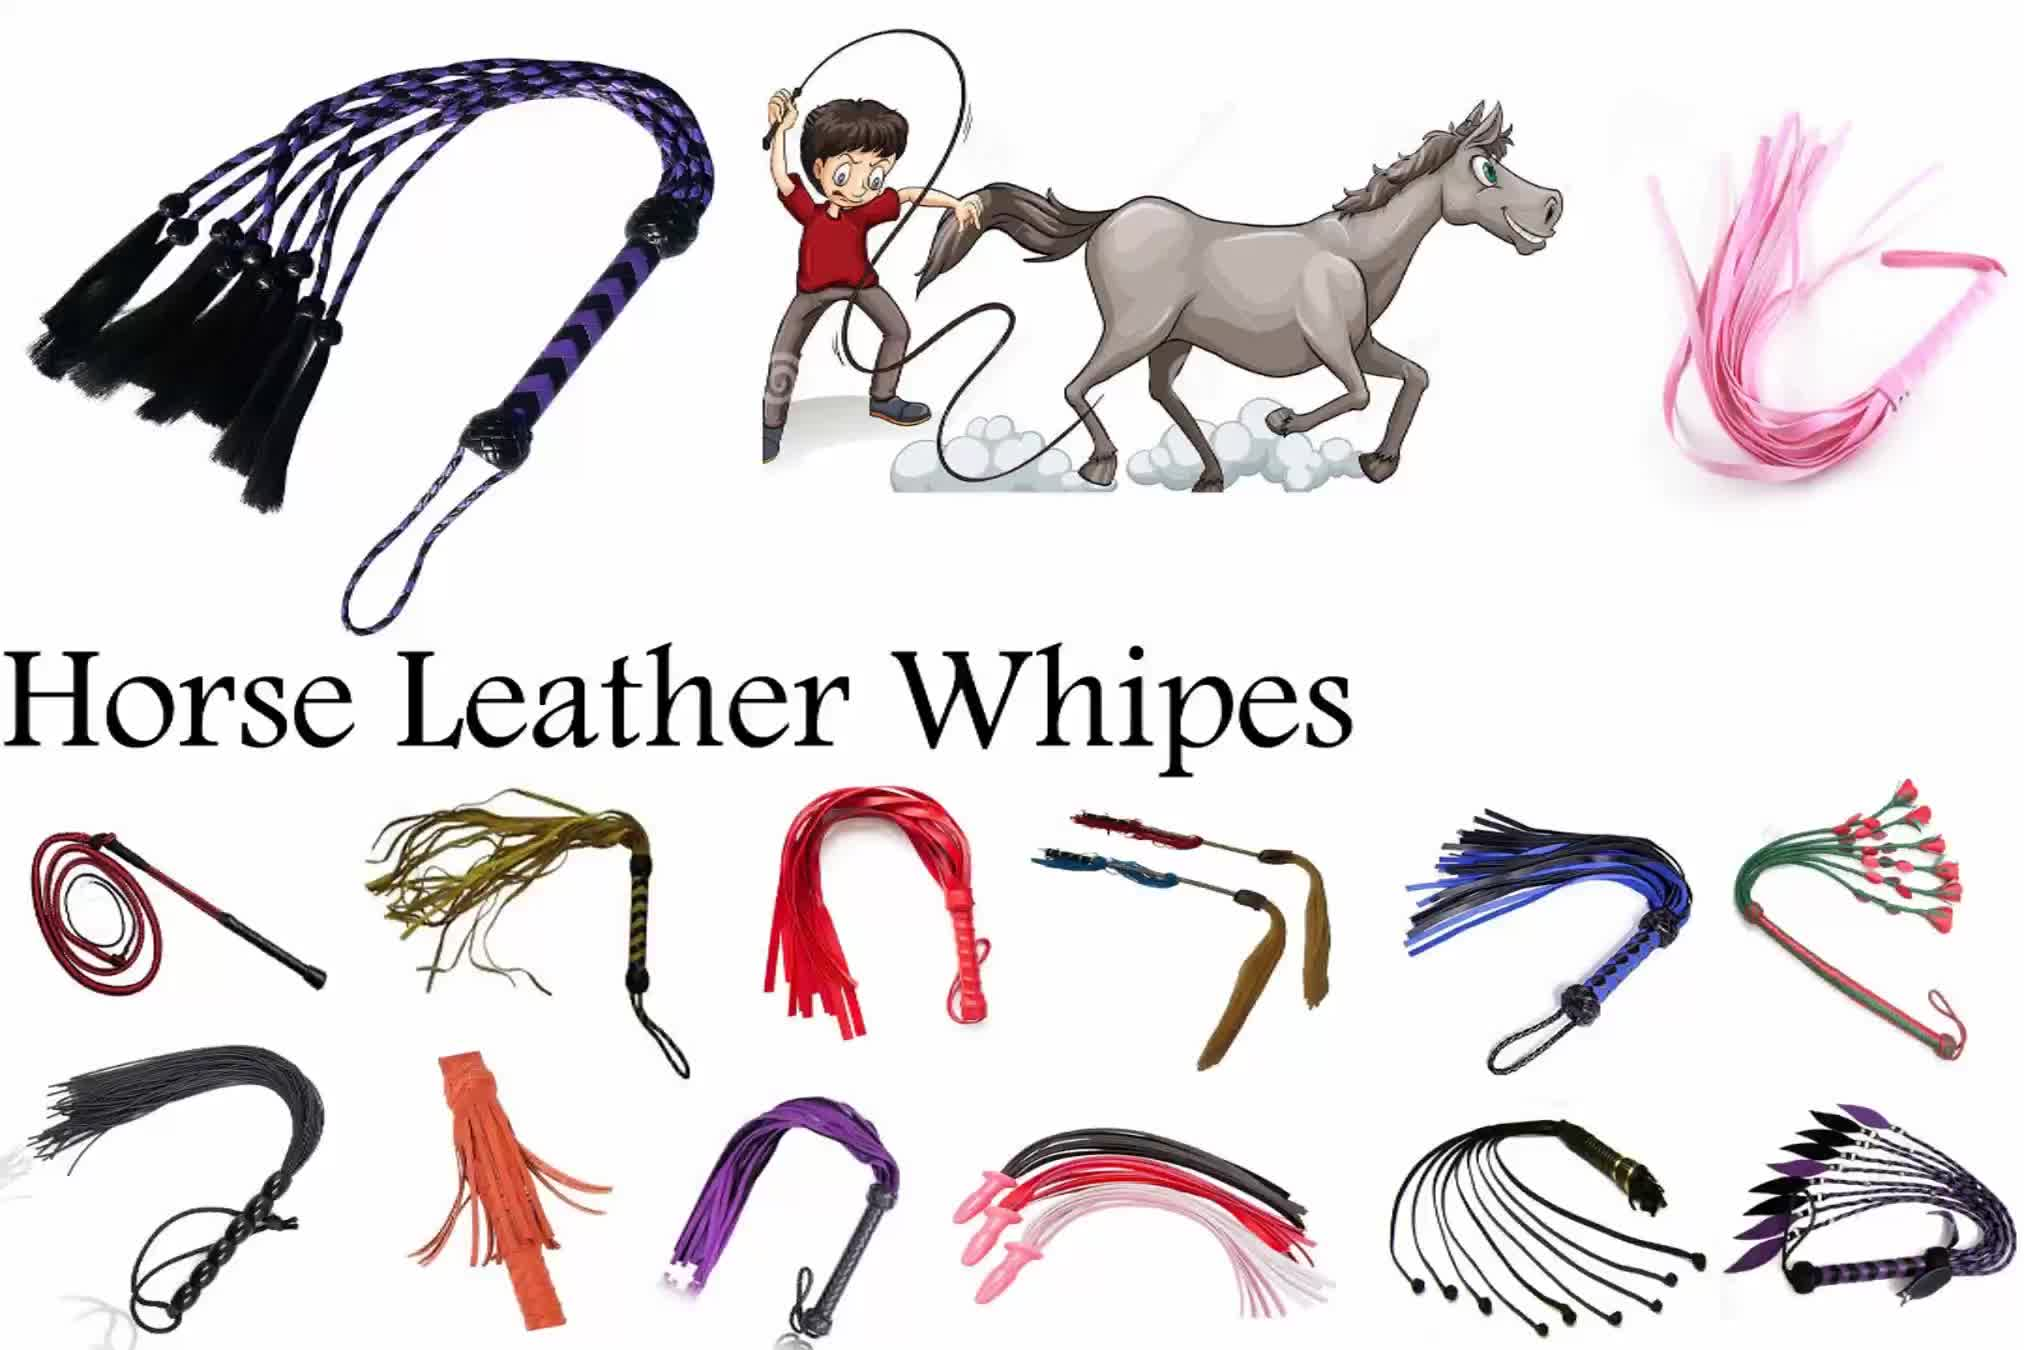 Leather Horse Whip Riding Crop Horsewhip Club whip Handmade